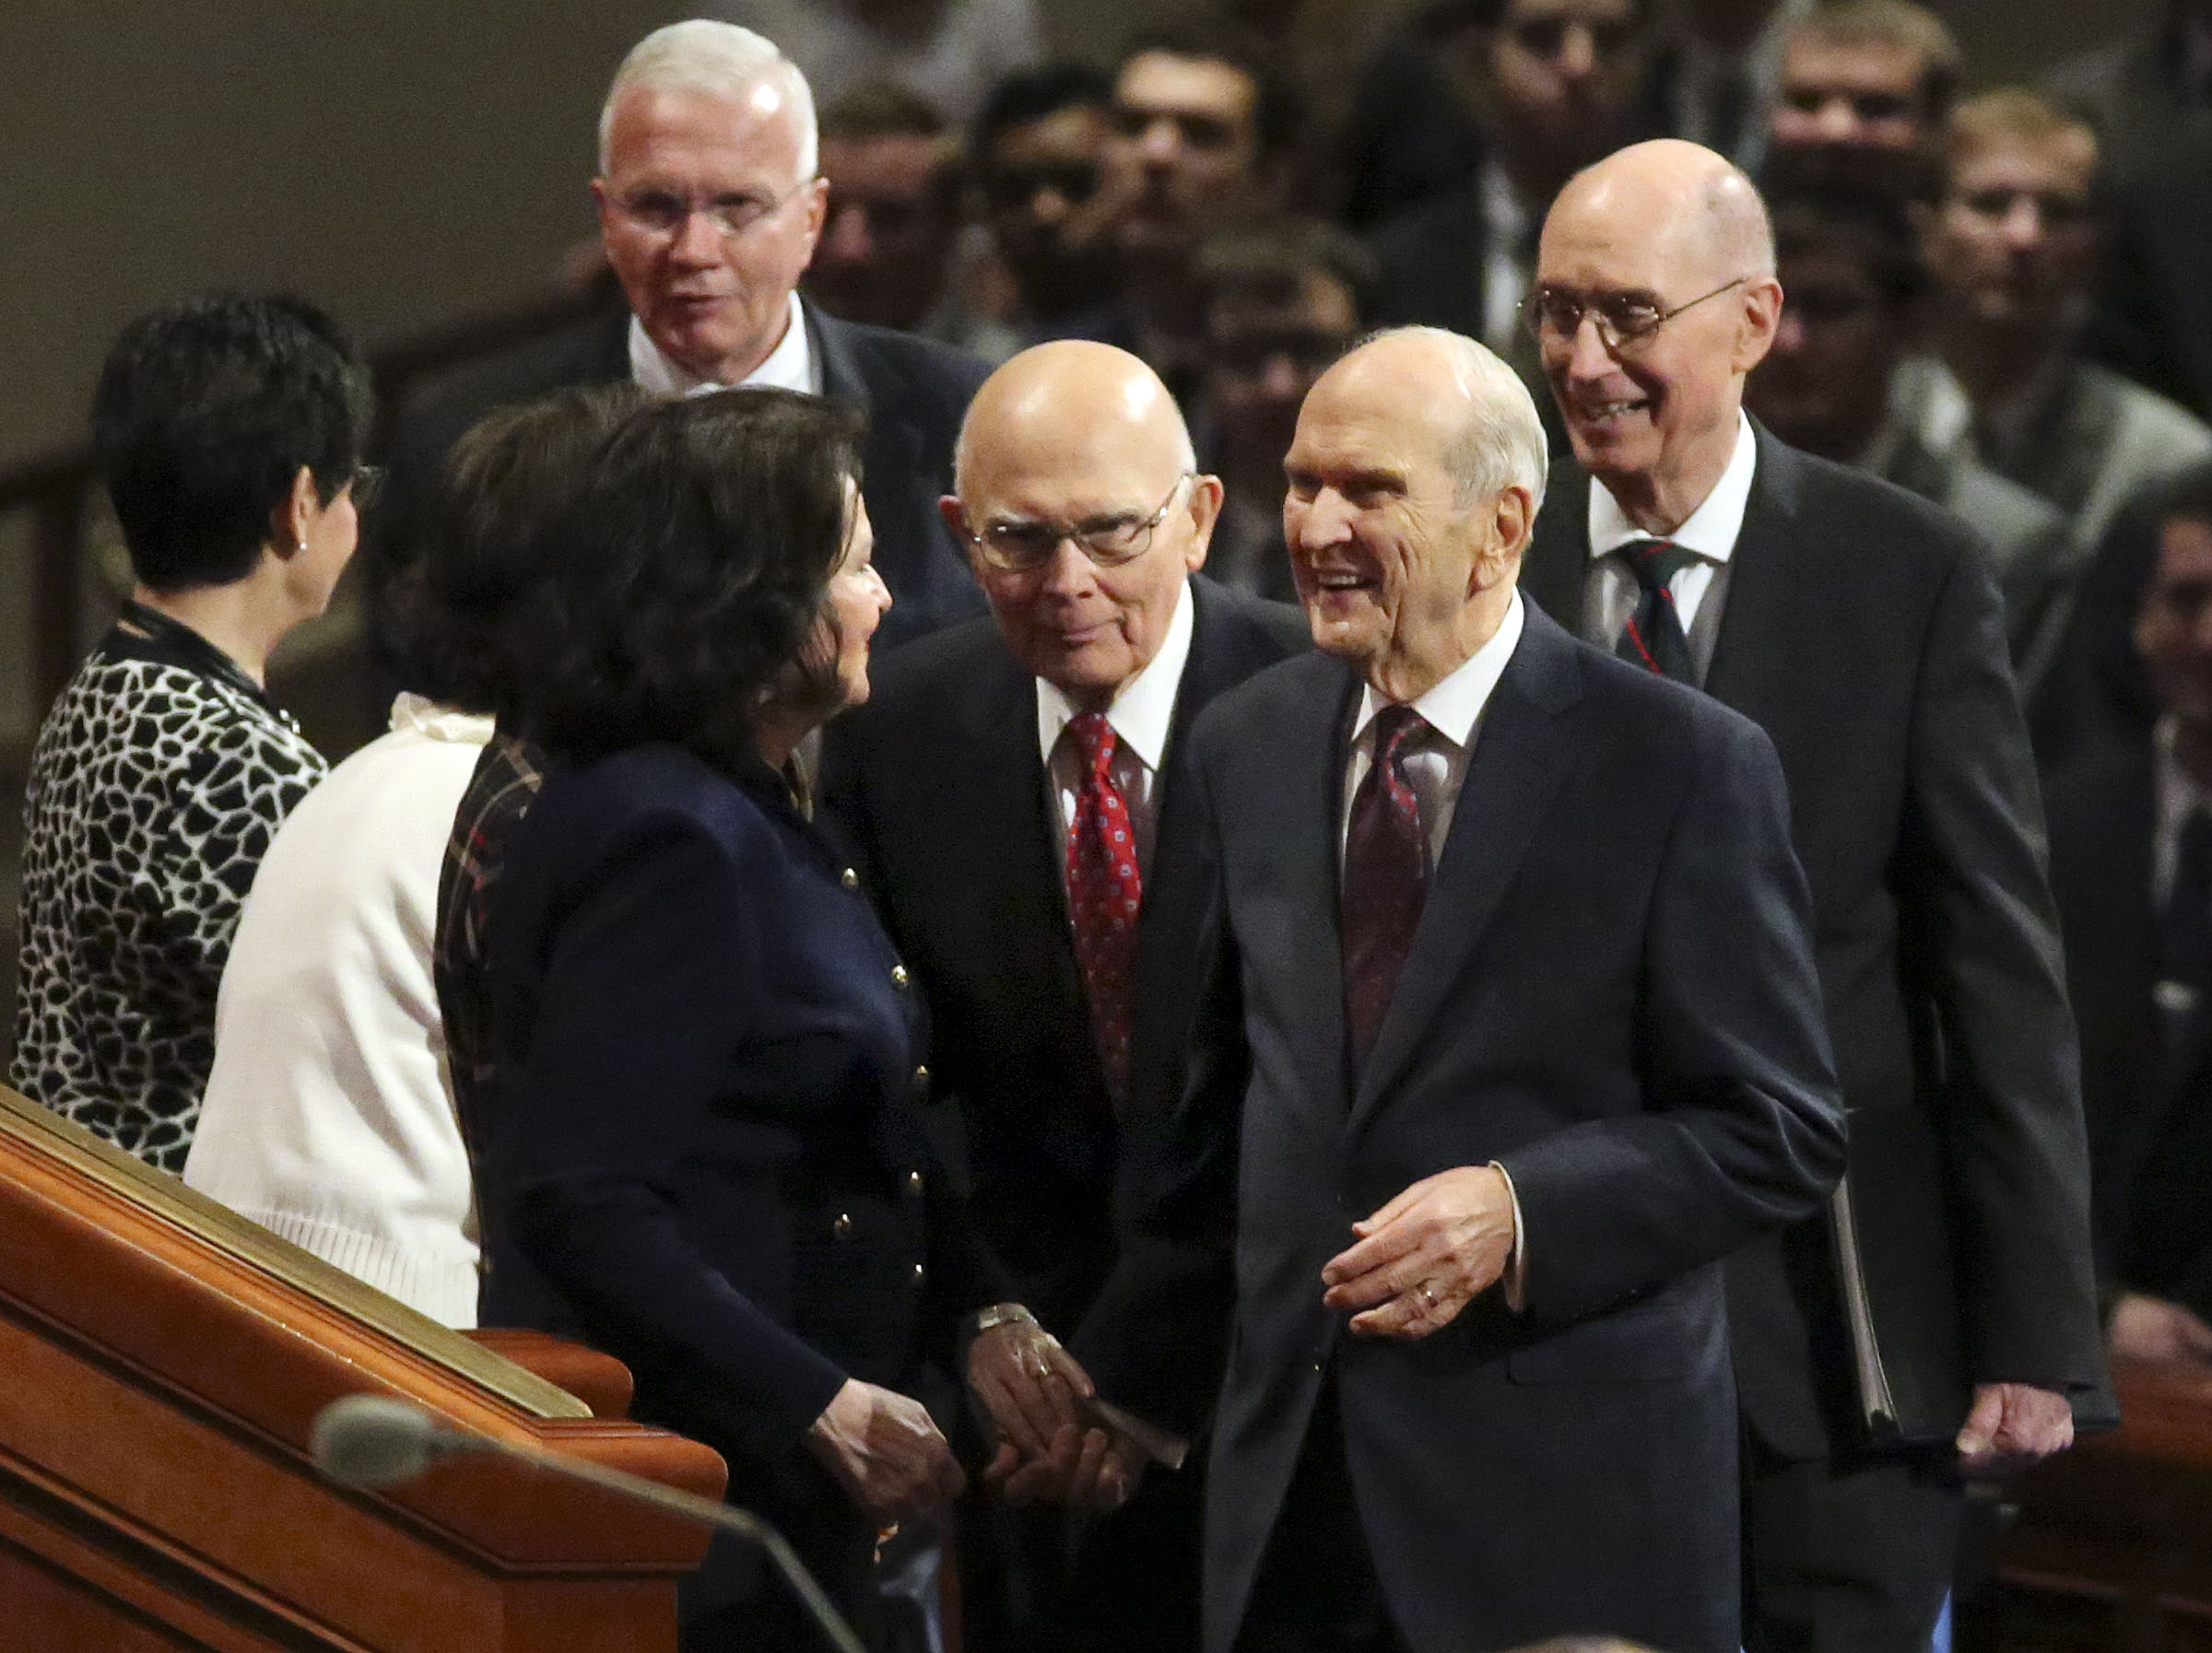 President Russell M. Nelson of The Church of Jesus Christ of Latter-day Saints, President Dallin H. Oaks, first counselor in the First Presidency, and President Henry B. Eyring, second counselor in the First Presidency, enter the Sunday afternoon session of the church's 188th Semiannual General Conference in the Conference Center in downtown Salt Lake City on Sunday, Oct. 7, 2018.